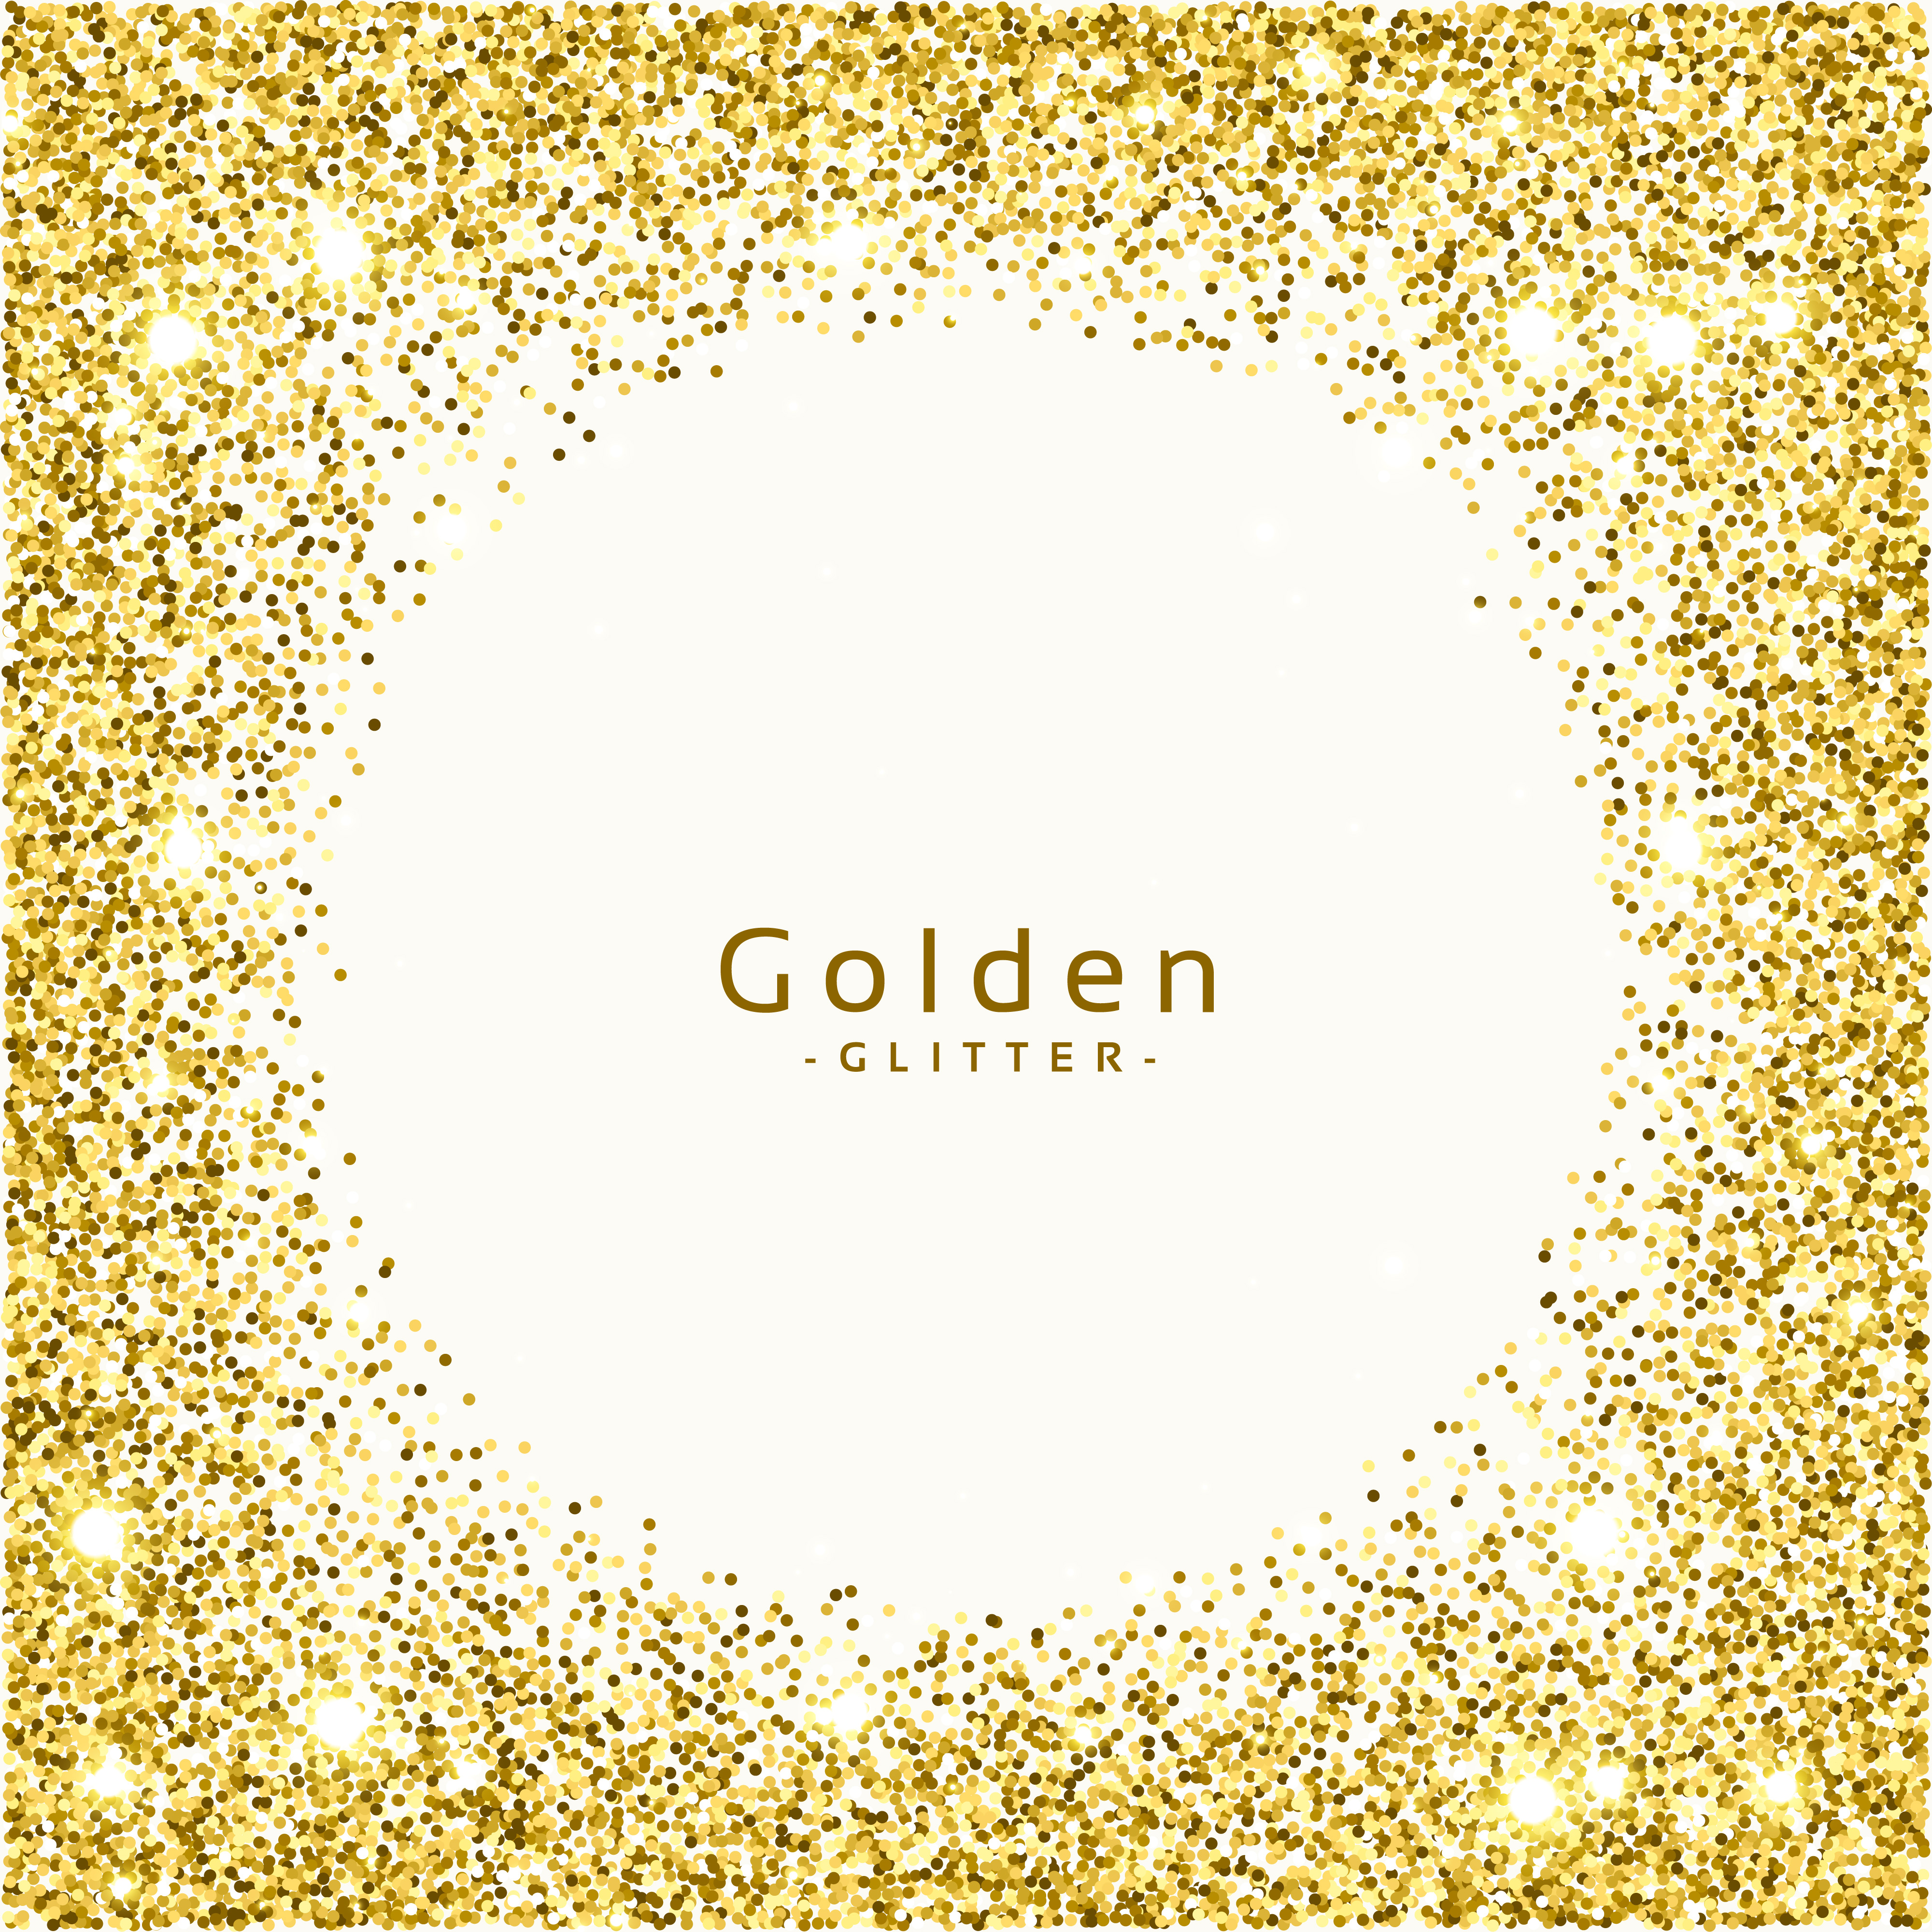 Glitter Gold: Golden Glitter Frame Background Vector